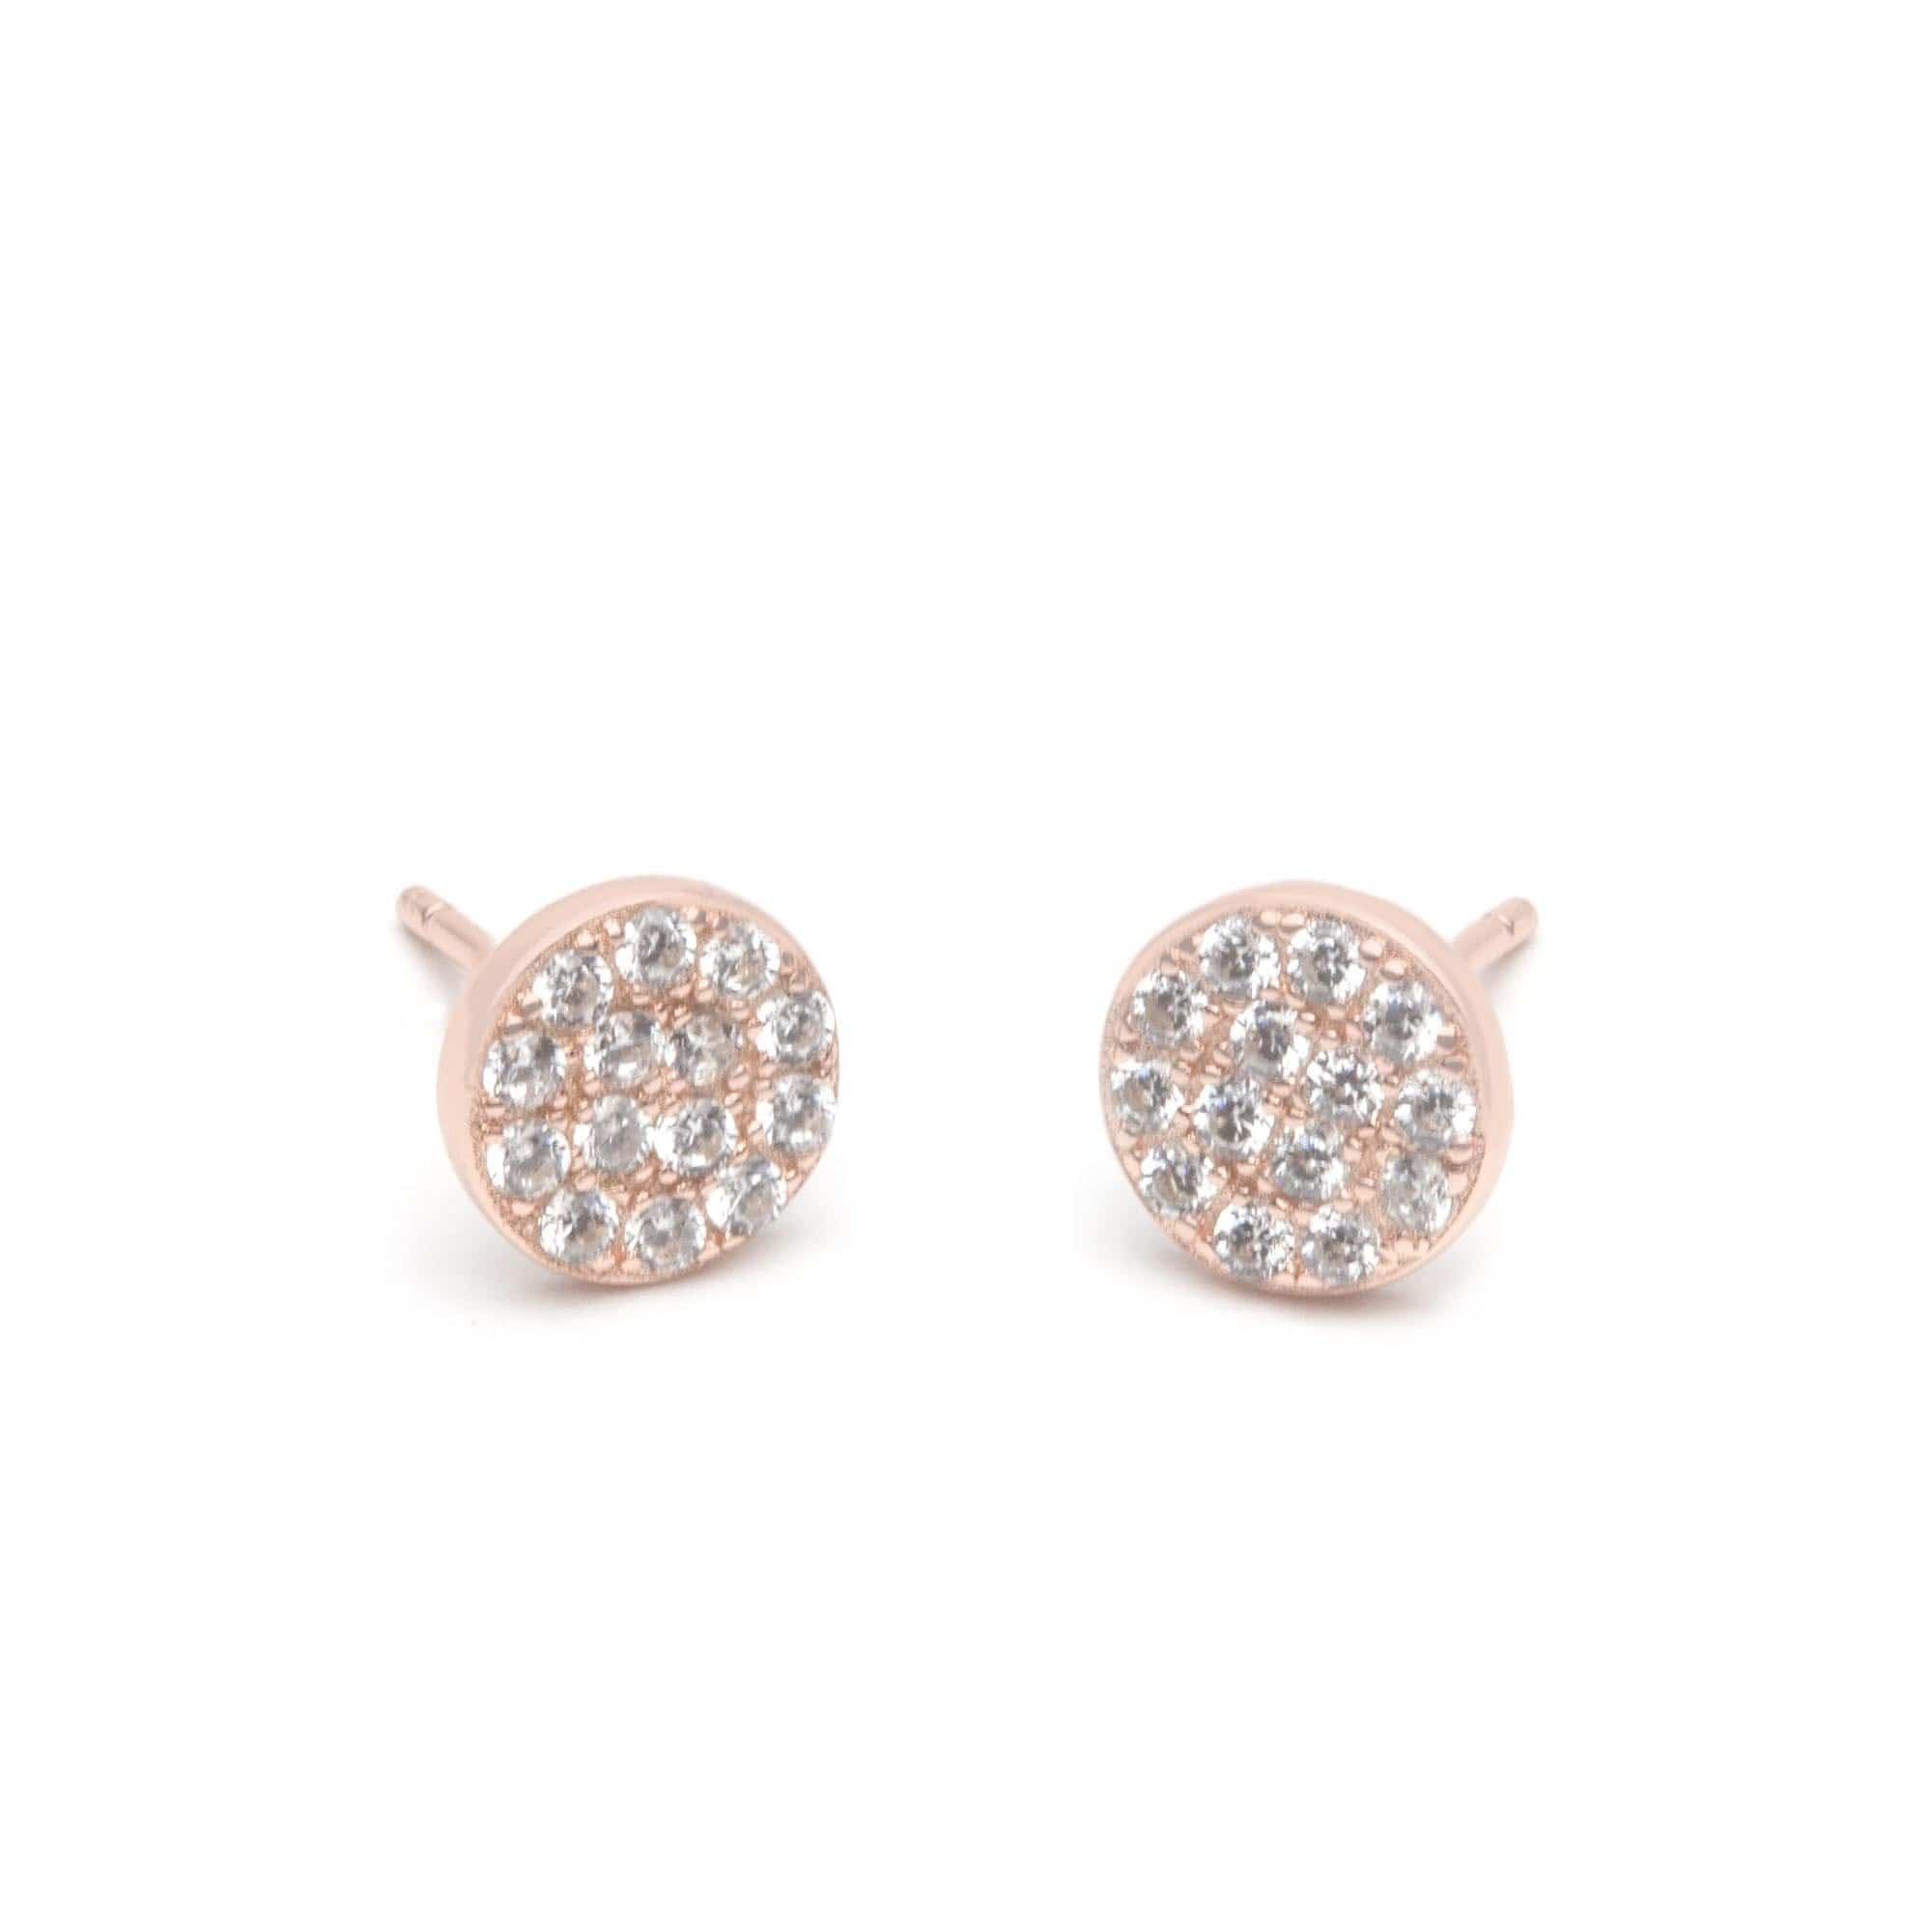 Jeanne's Jewels earrings Rose Gold Piper